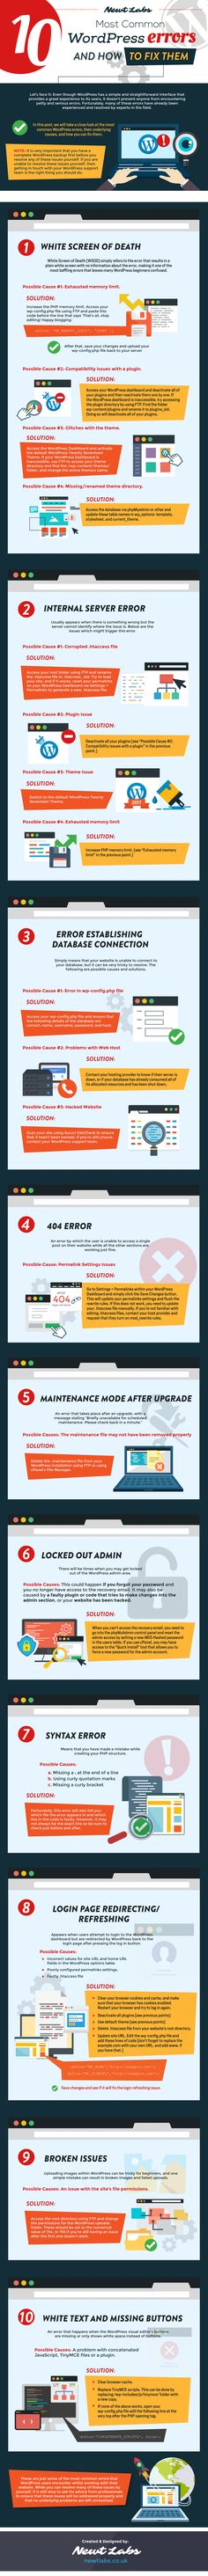 Got a WordPress error, and wondering how to fix it? Check out the tips on this valuable infographic to fix the 10 most common WordPress errors. Make Money Blogging, How To Make Money, Wordpress Help, Wordpress Support, Inspirational Quotes For Entrepreneurs, Social Entrepreneurship, Le Web, Blog Tips, How To Start A Blog